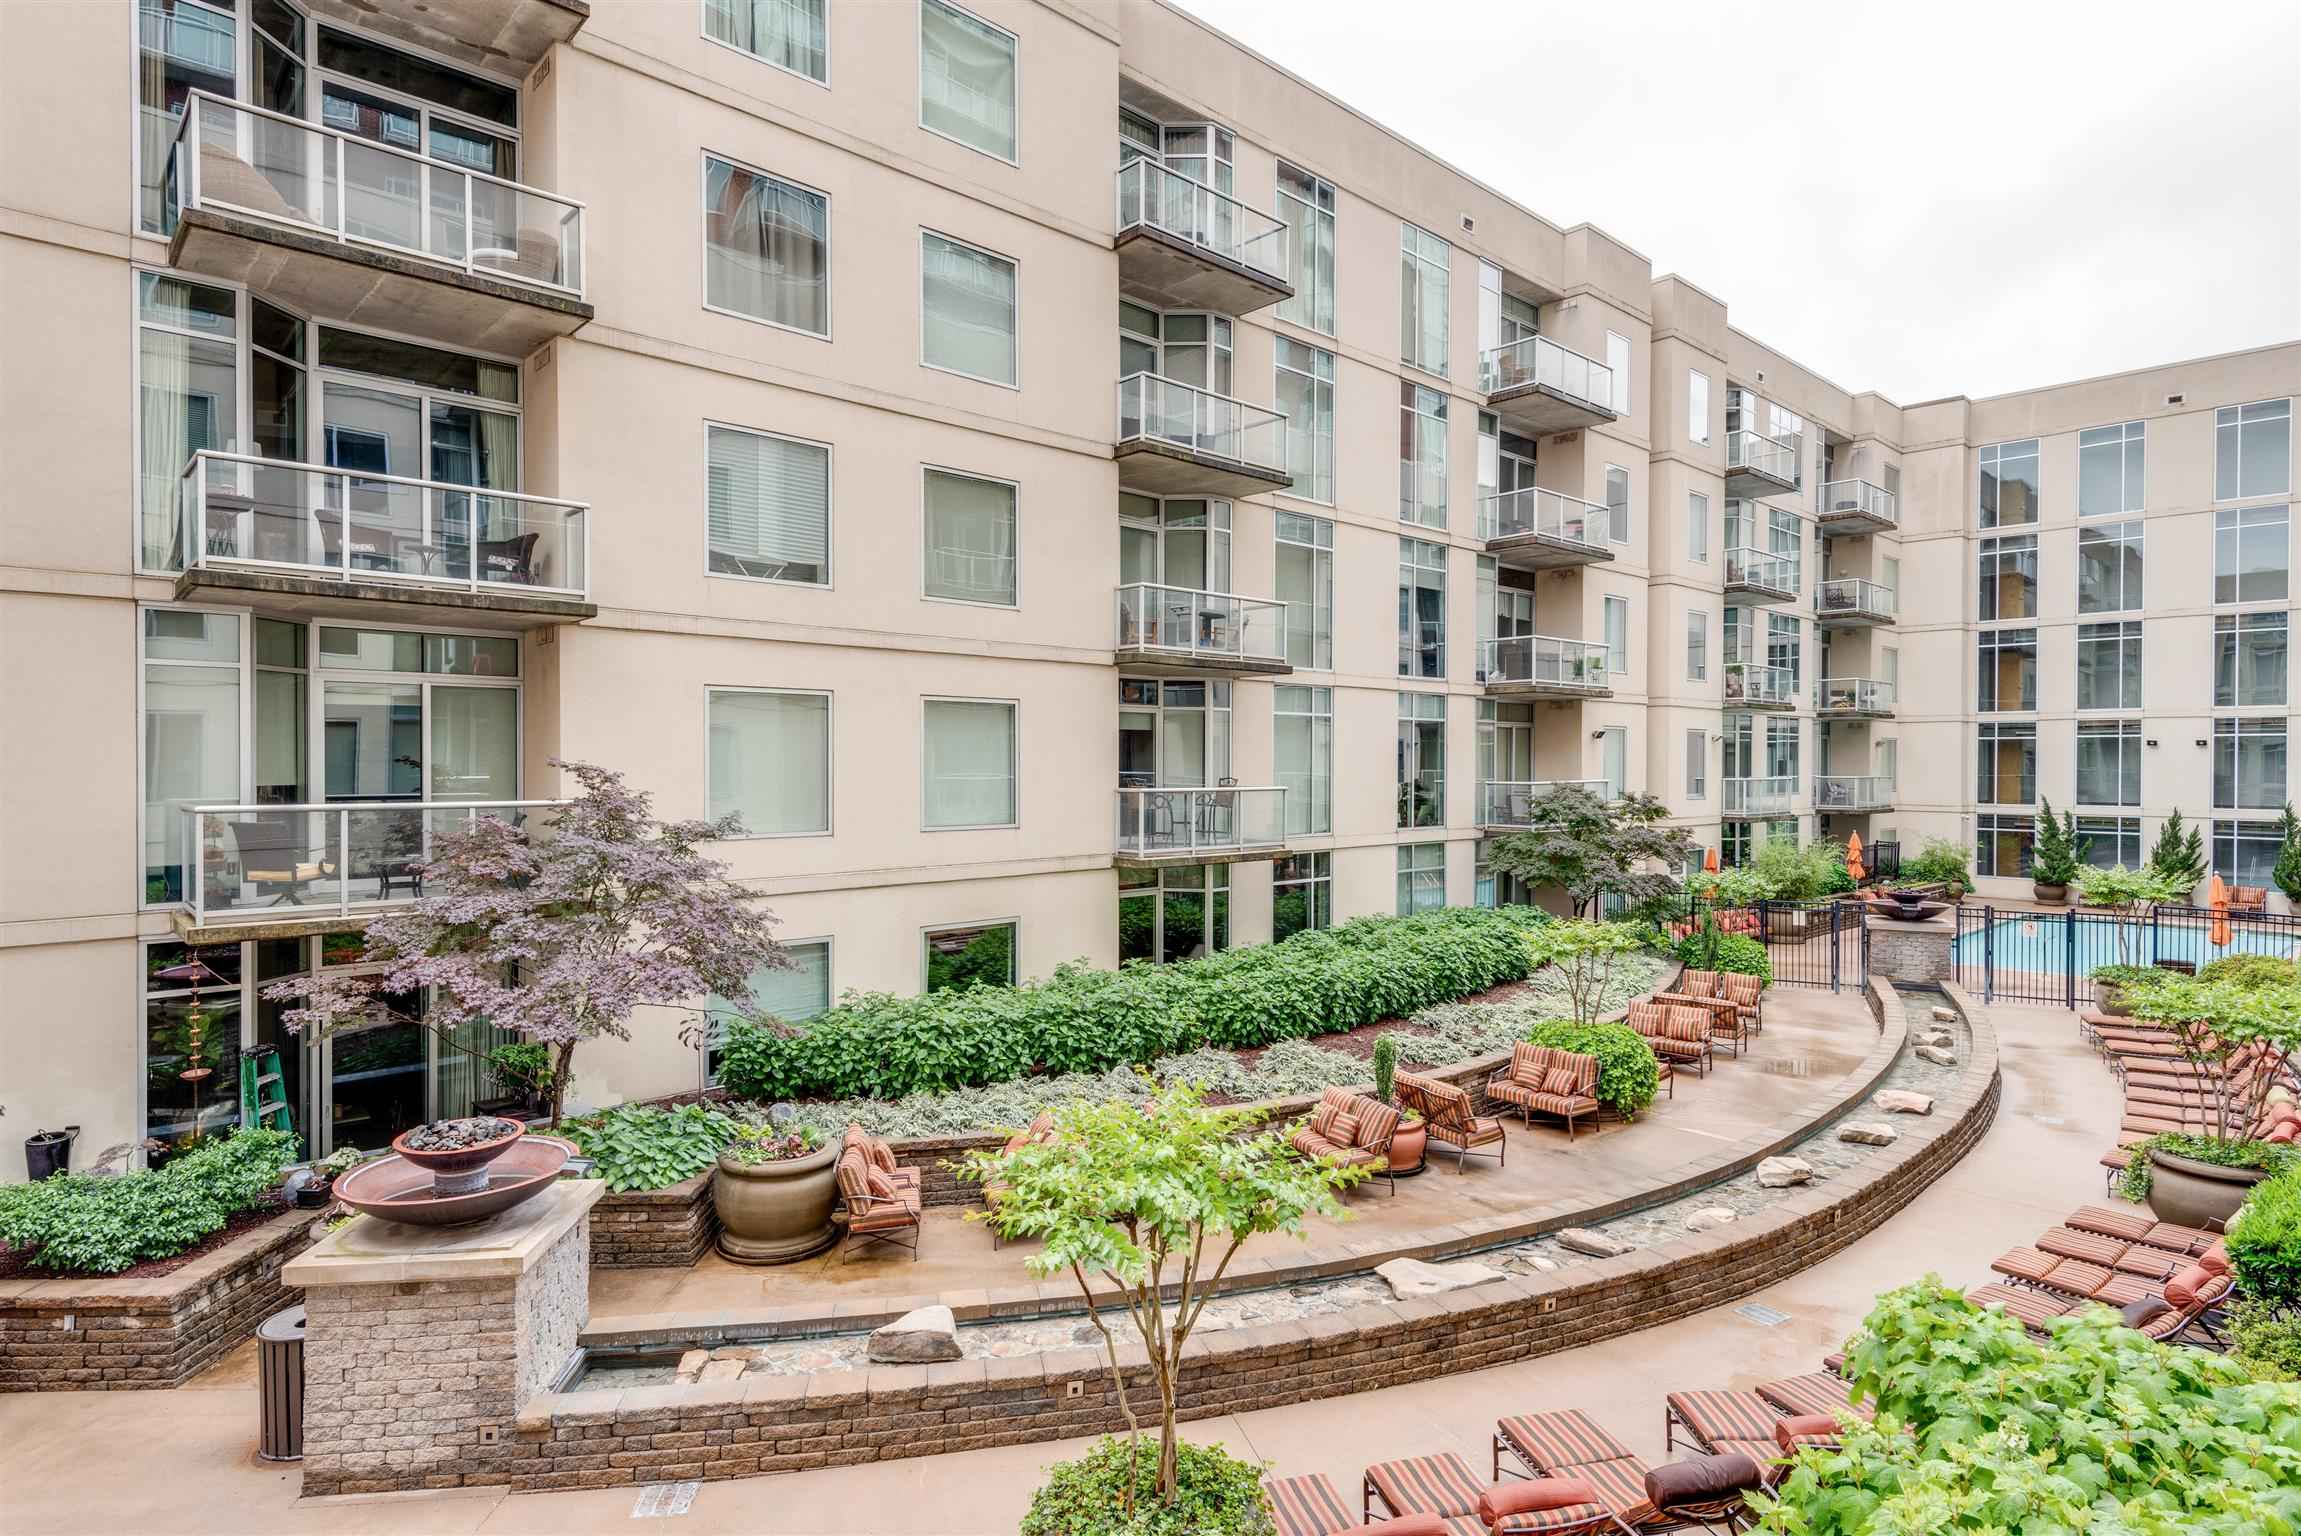 600 12Th Ave S Apt 506, Nashville - Midtown in Davidson County County, TN 37203 Home for Sale